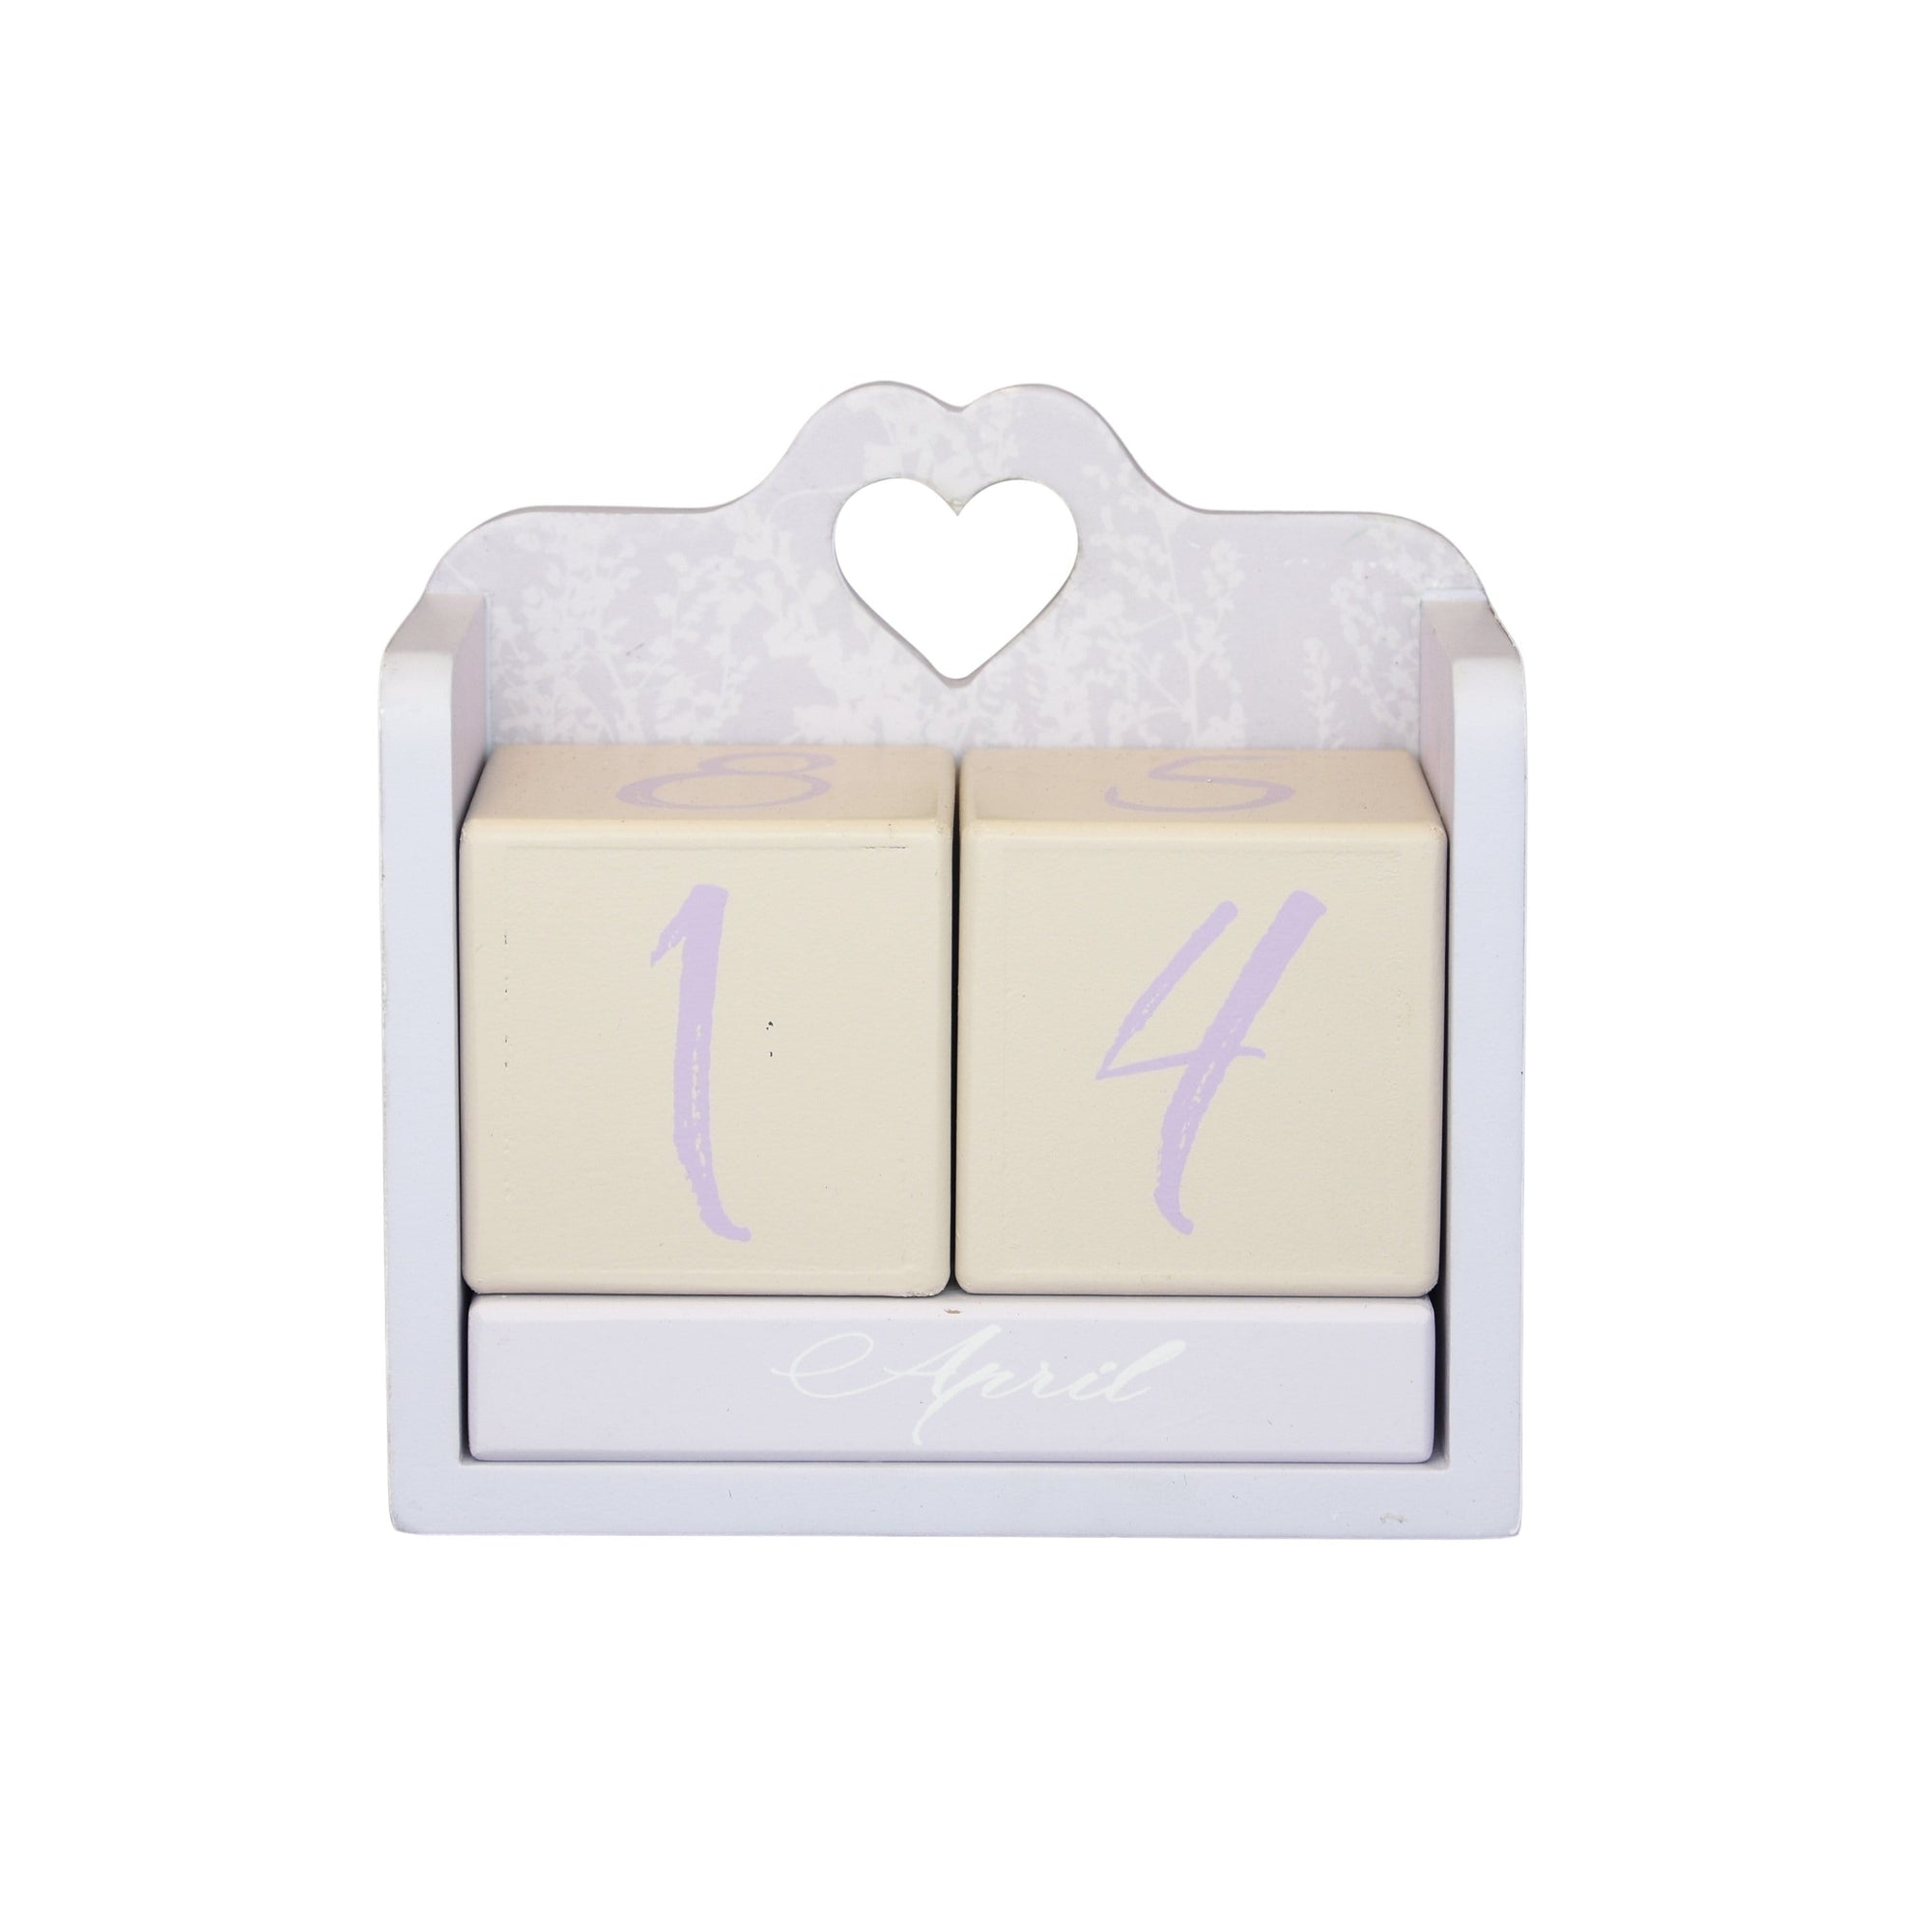 Candlelight Home MDF Calander Block Meadows with Shrinkwrap and Acetate Box White 12cm 6PK